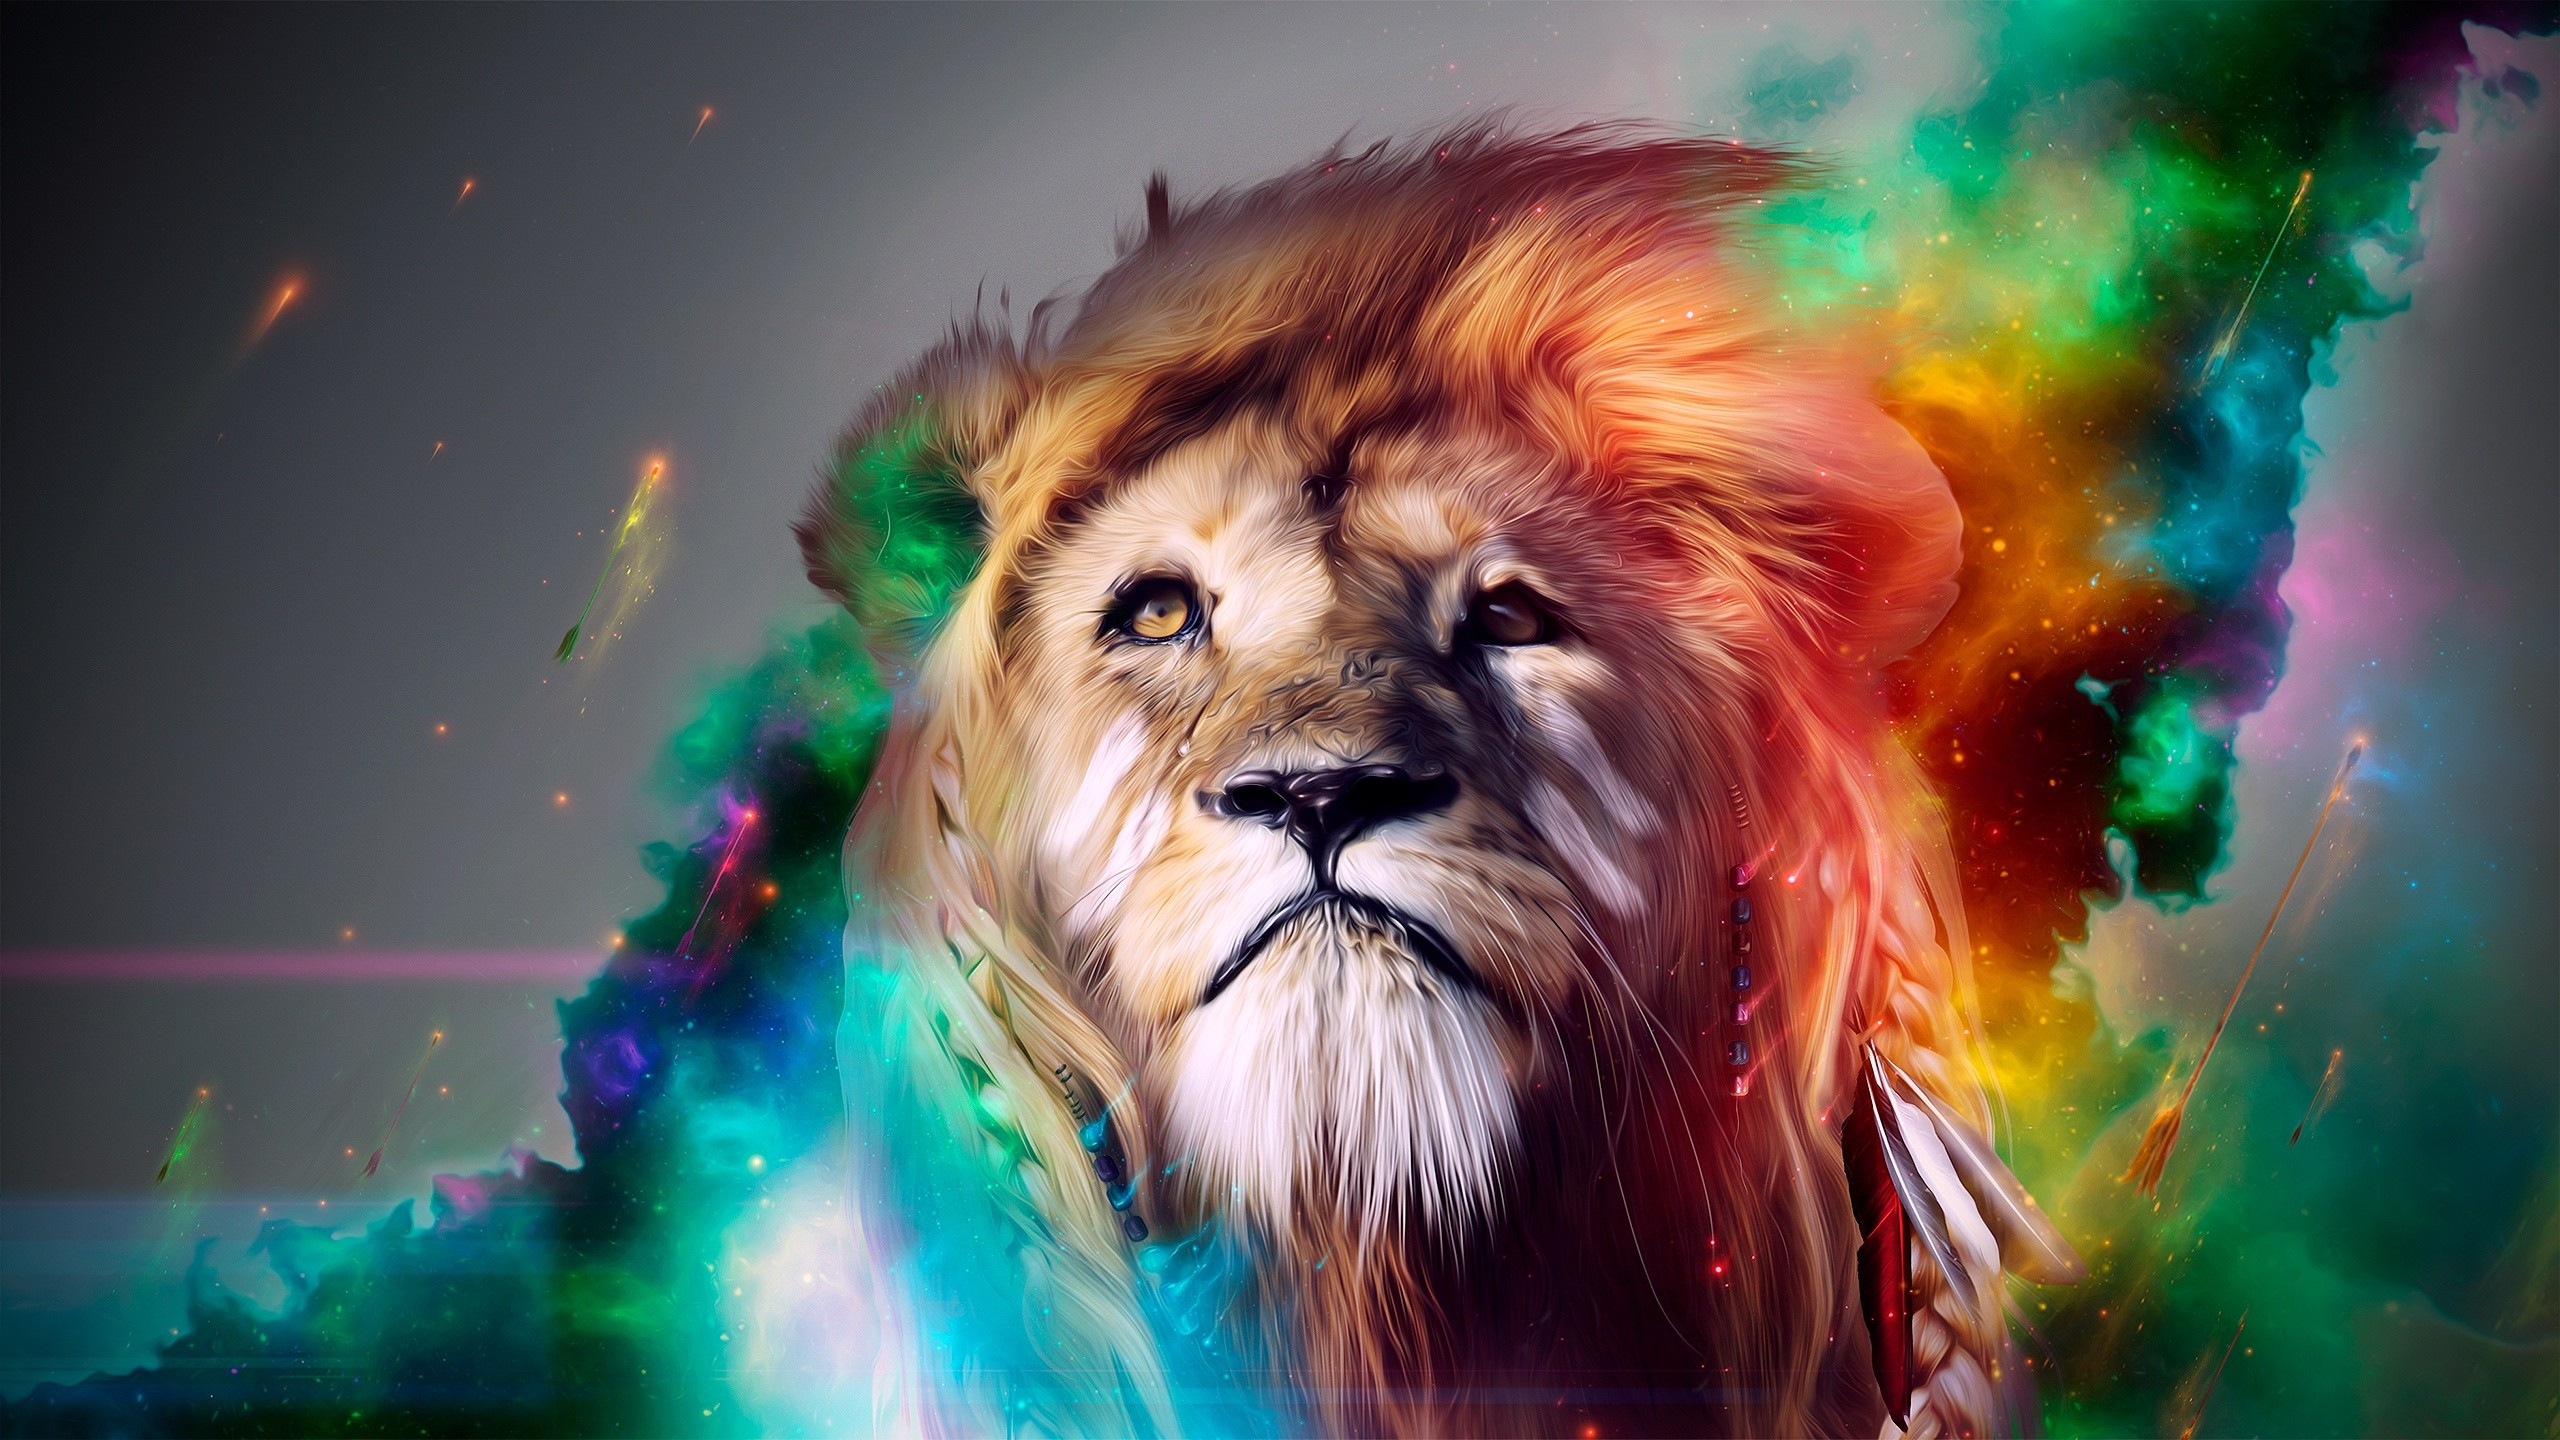 1278 Lion Hd Wallpapers Background Images Wallpaper Abyss